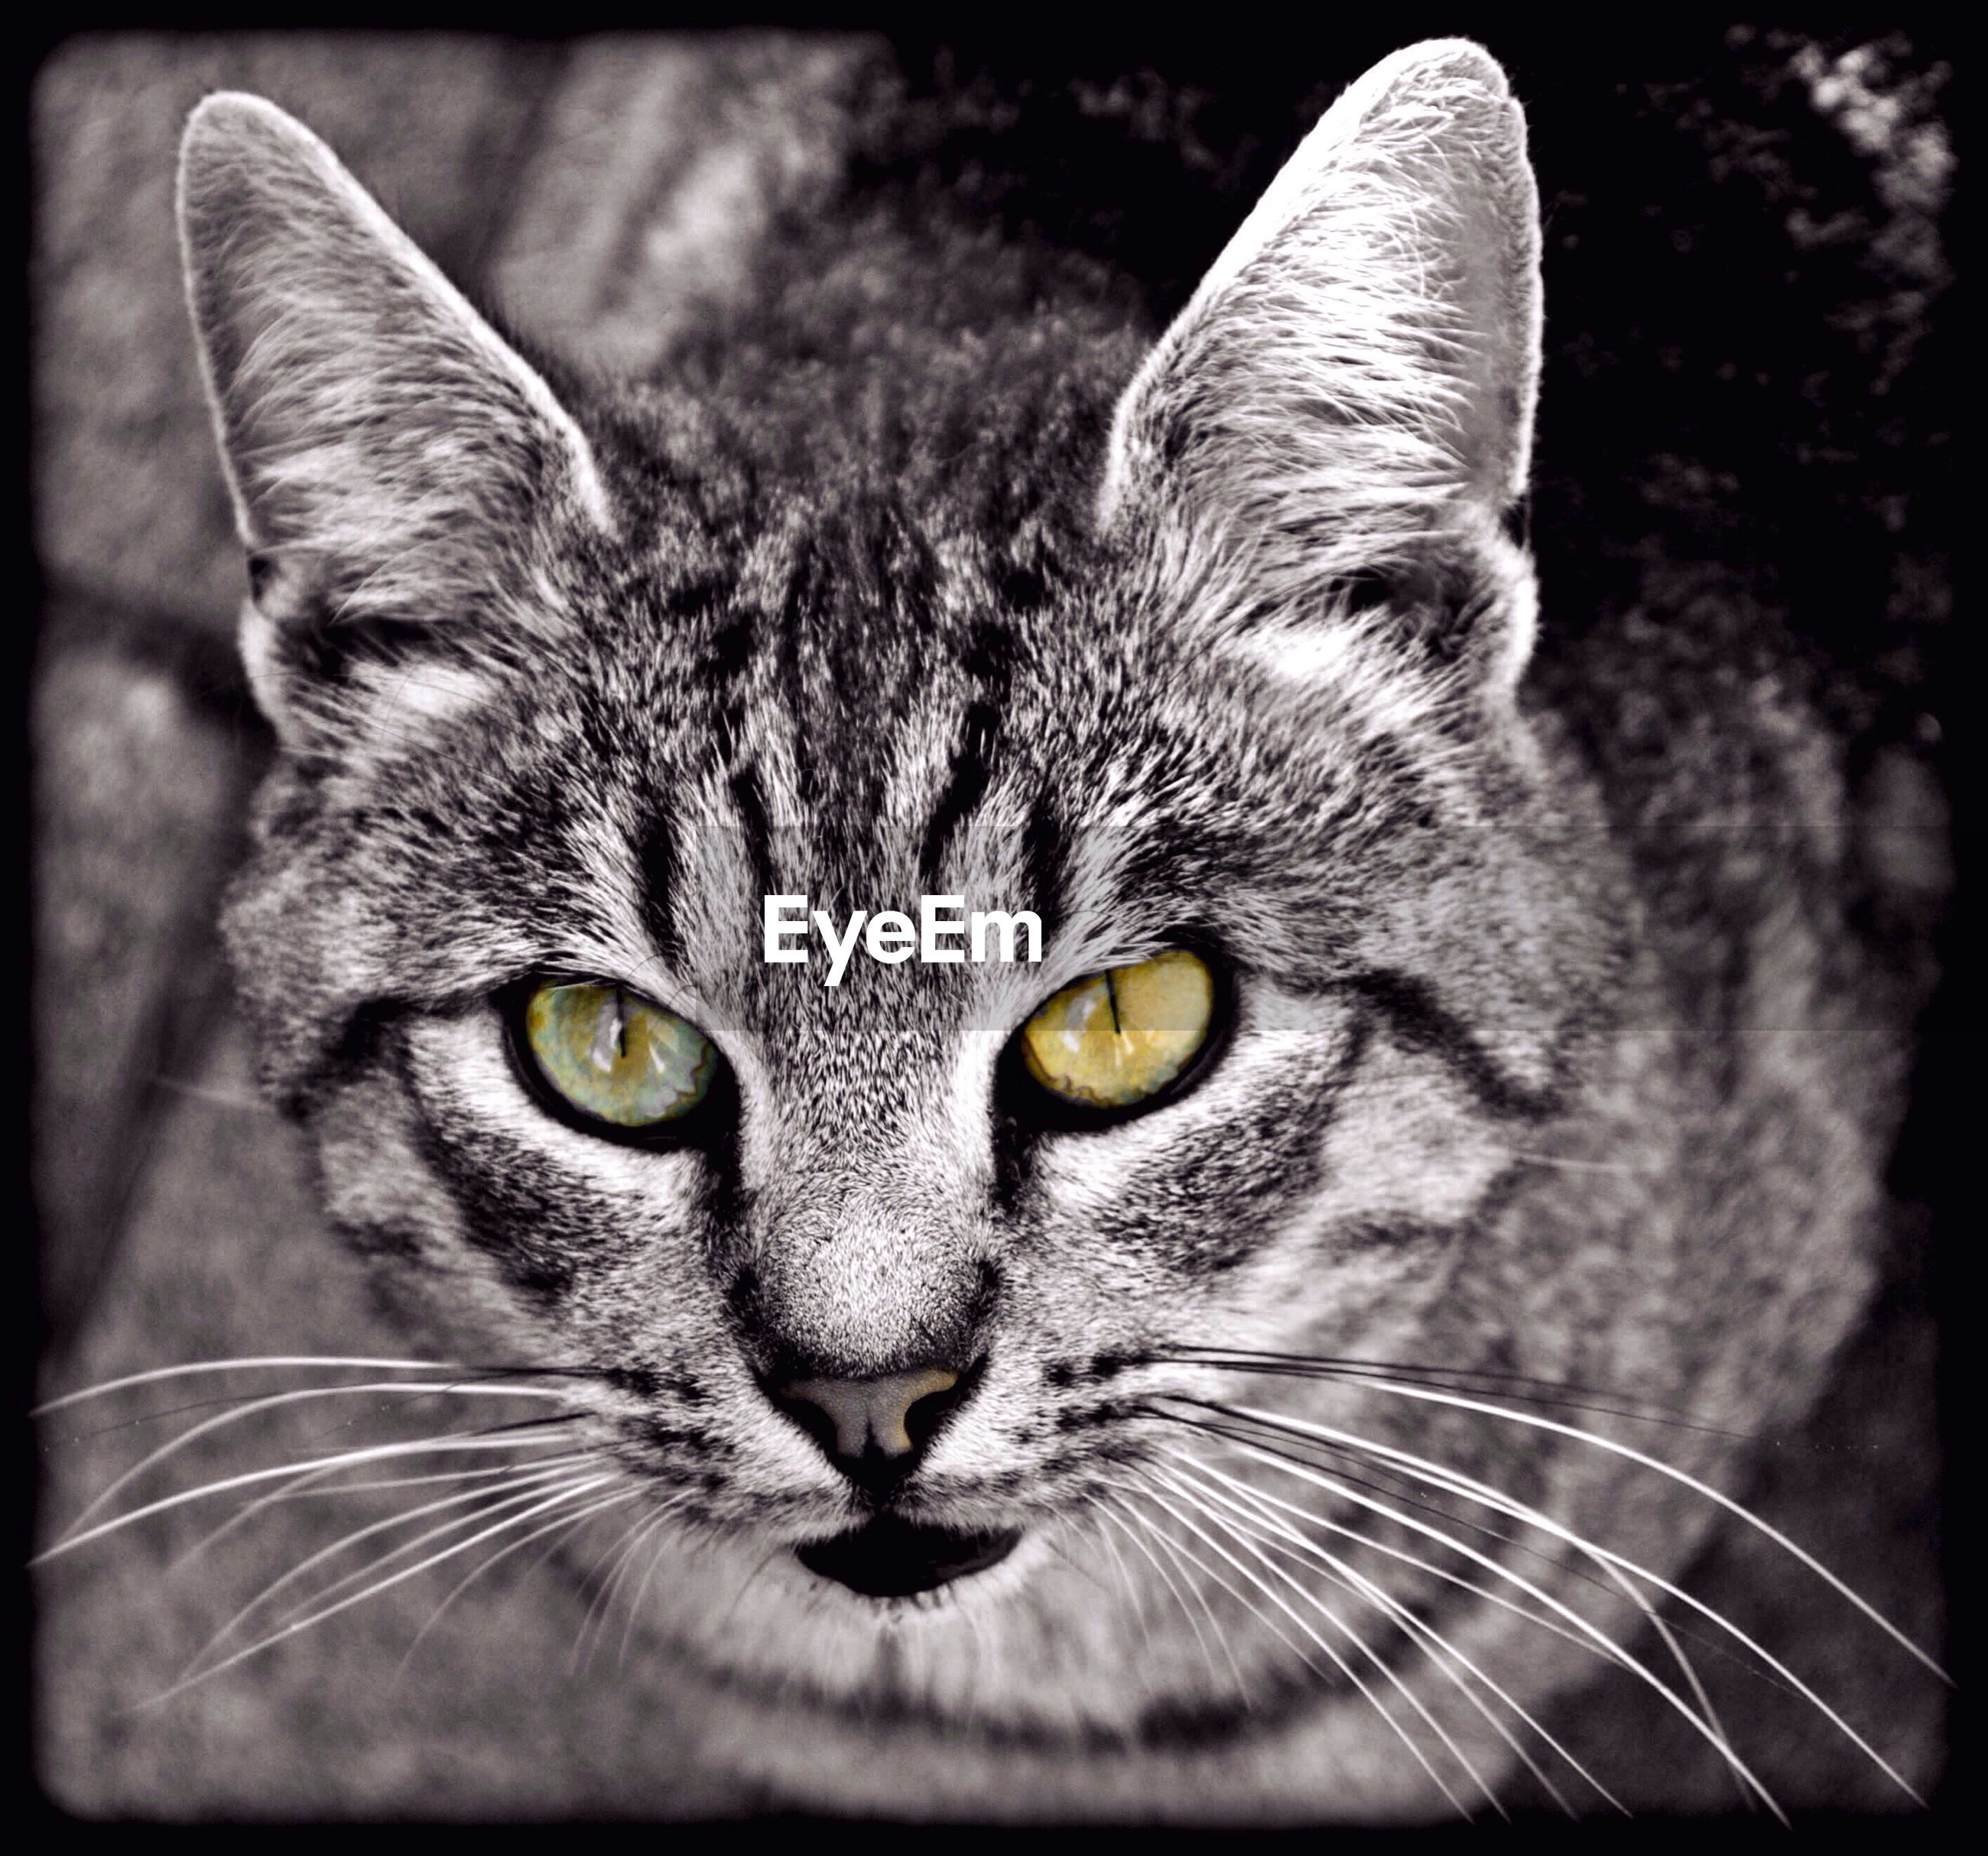 domestic cat, one animal, animal themes, domestic animals, cat, pets, mammal, close-up, feline, whisker, looking at camera, front view, animal head, alertness, animal, focus on foreground, snout, zoology, animal eye, whiskers, no people, tabby, animal nose